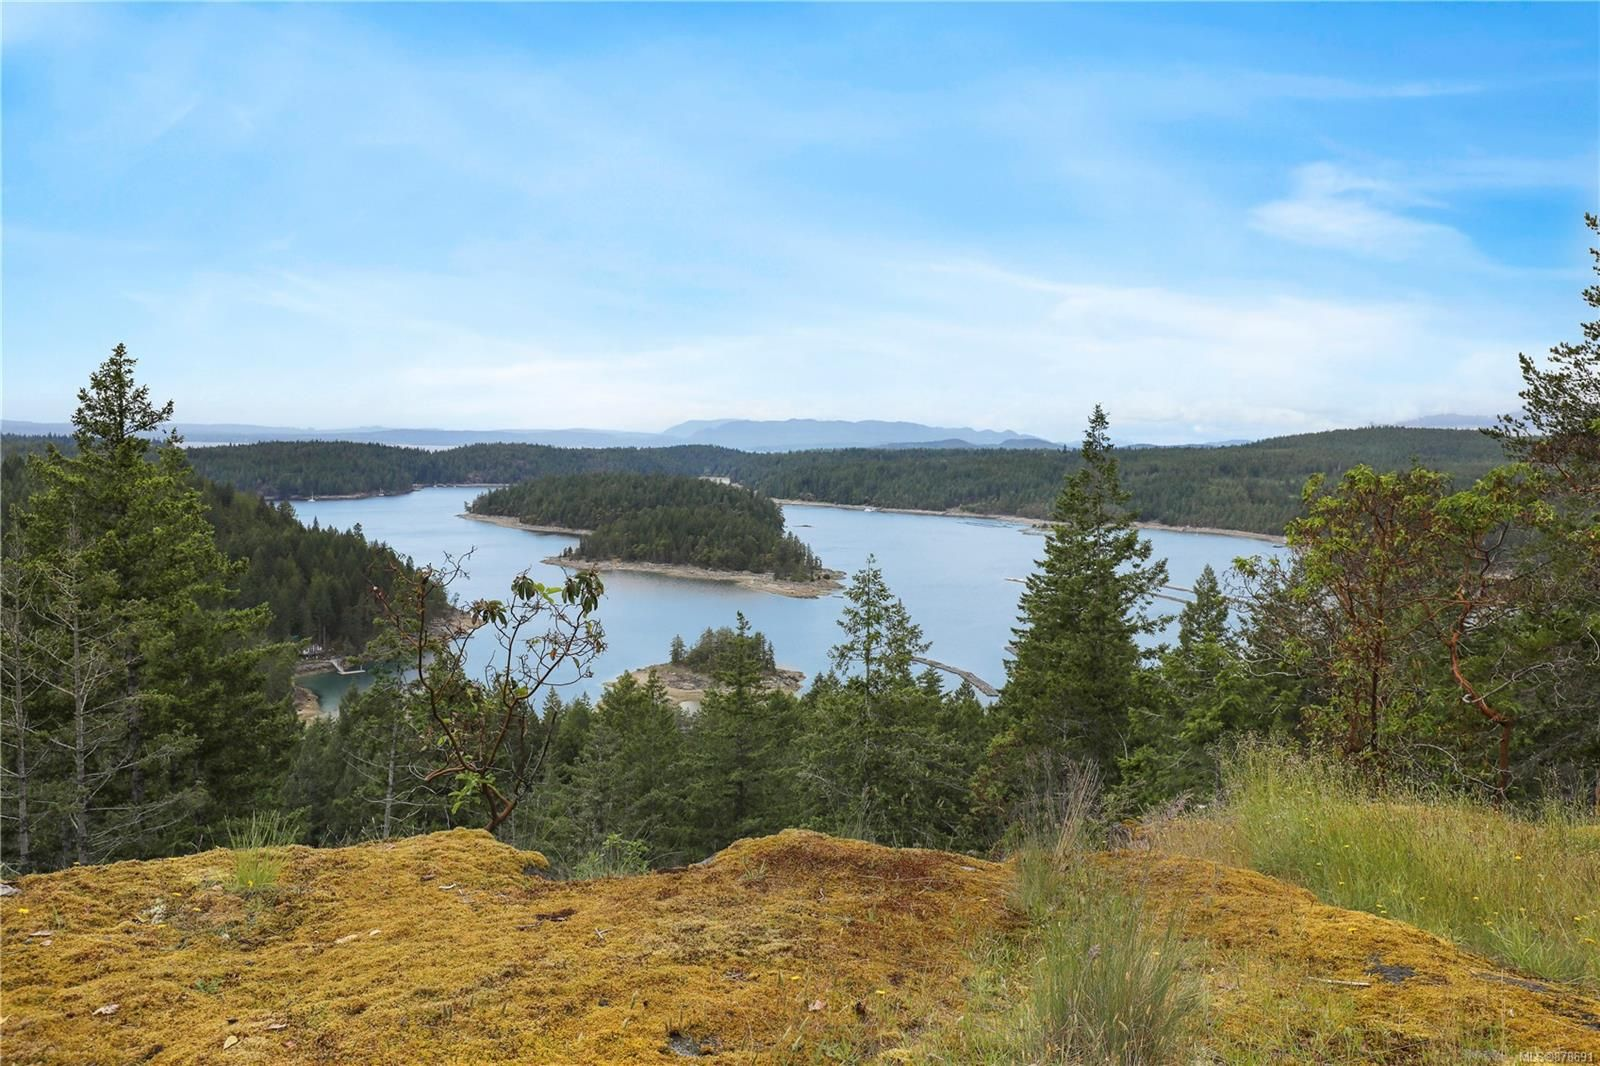 Photo 27: Photos: 979 Thunder Rd in : Isl Cortes Island House for sale (Islands)  : MLS®# 878691